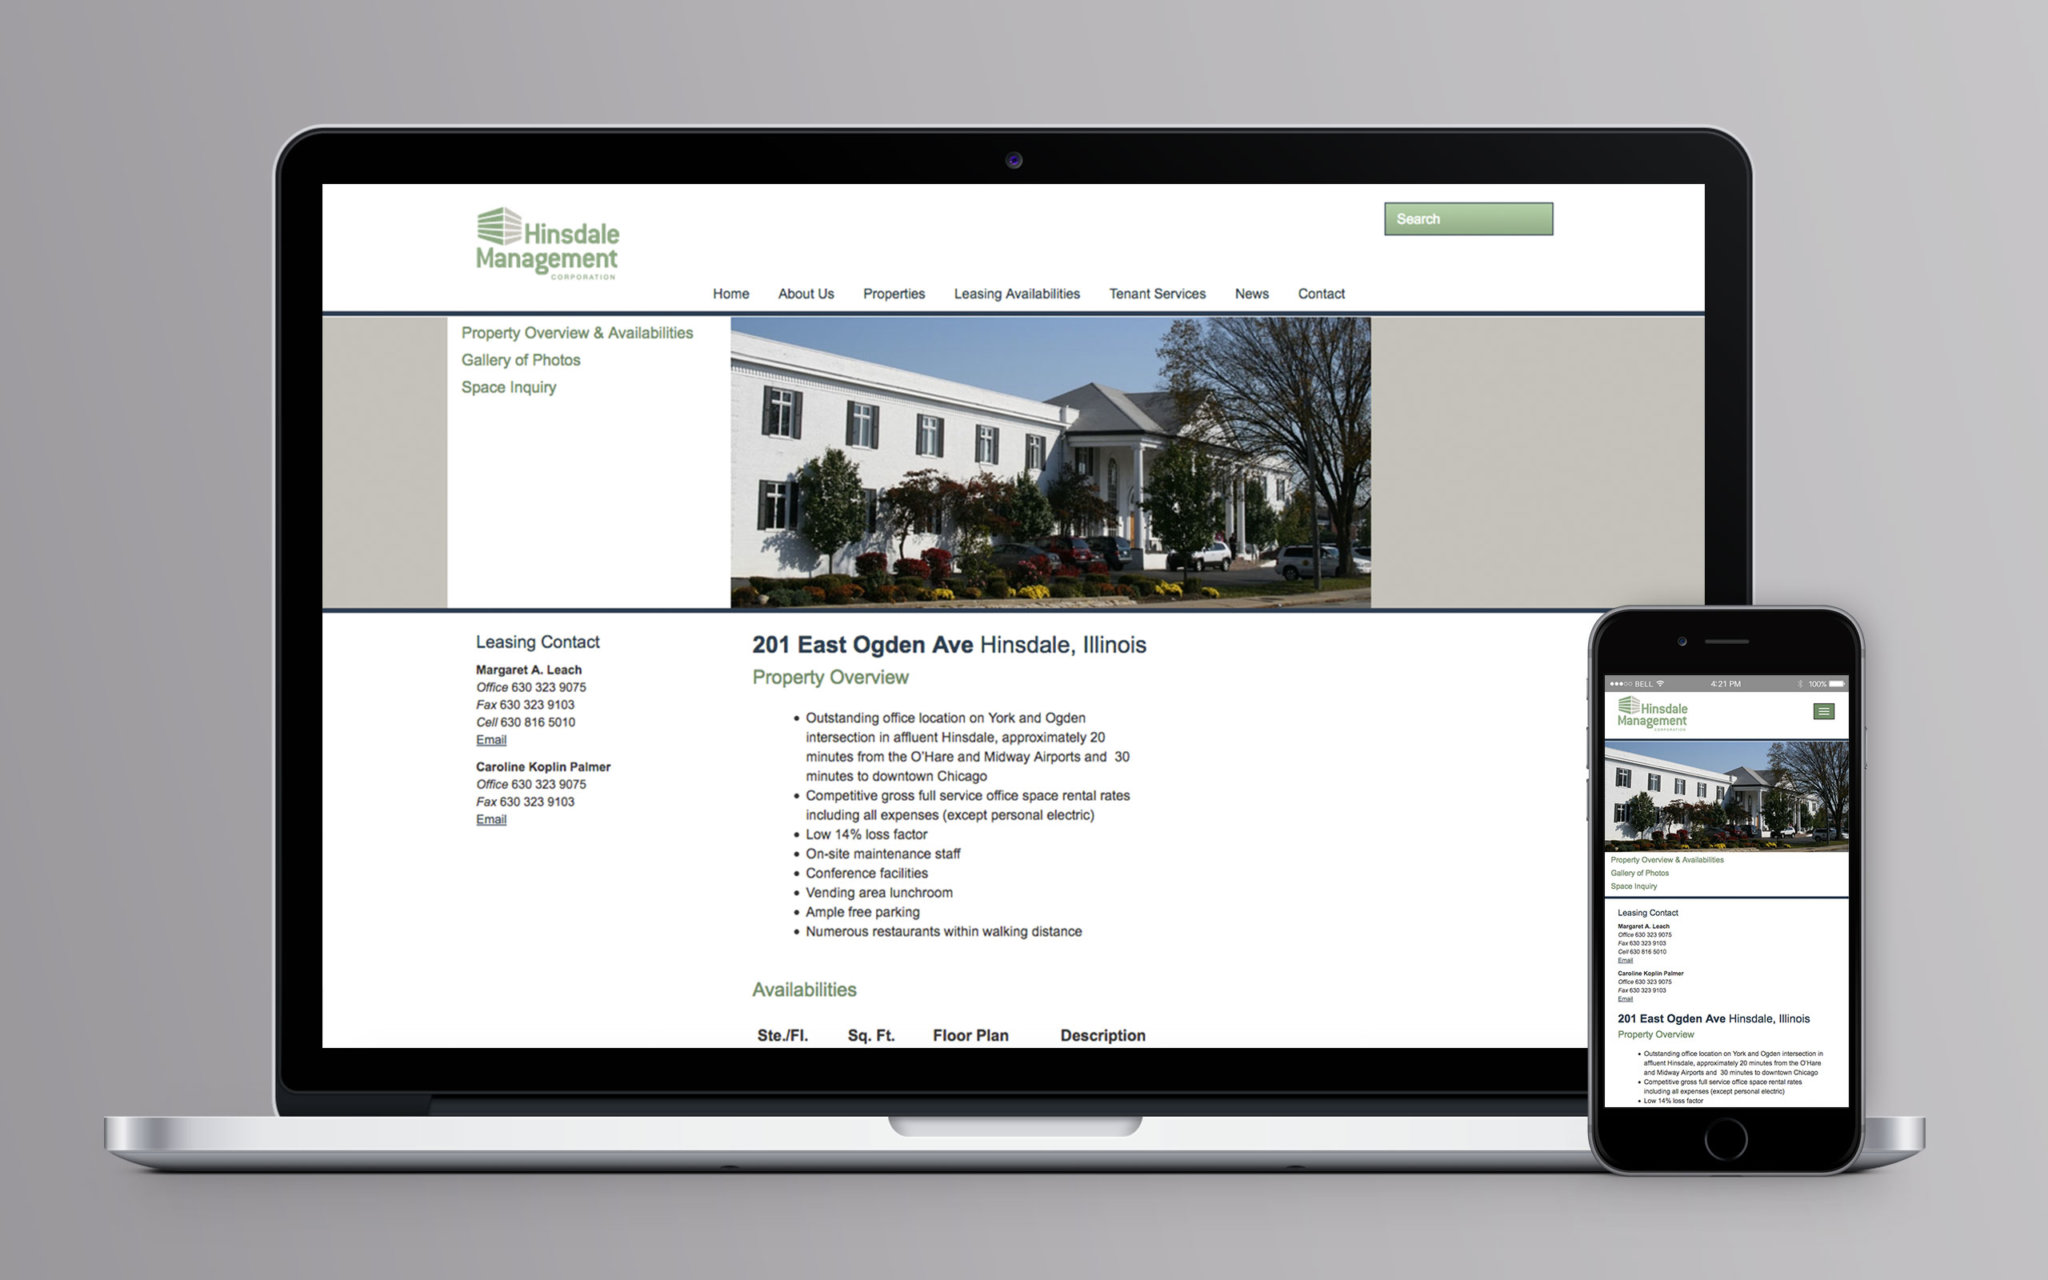 Hinsdale Management Corporation Website Property Overview